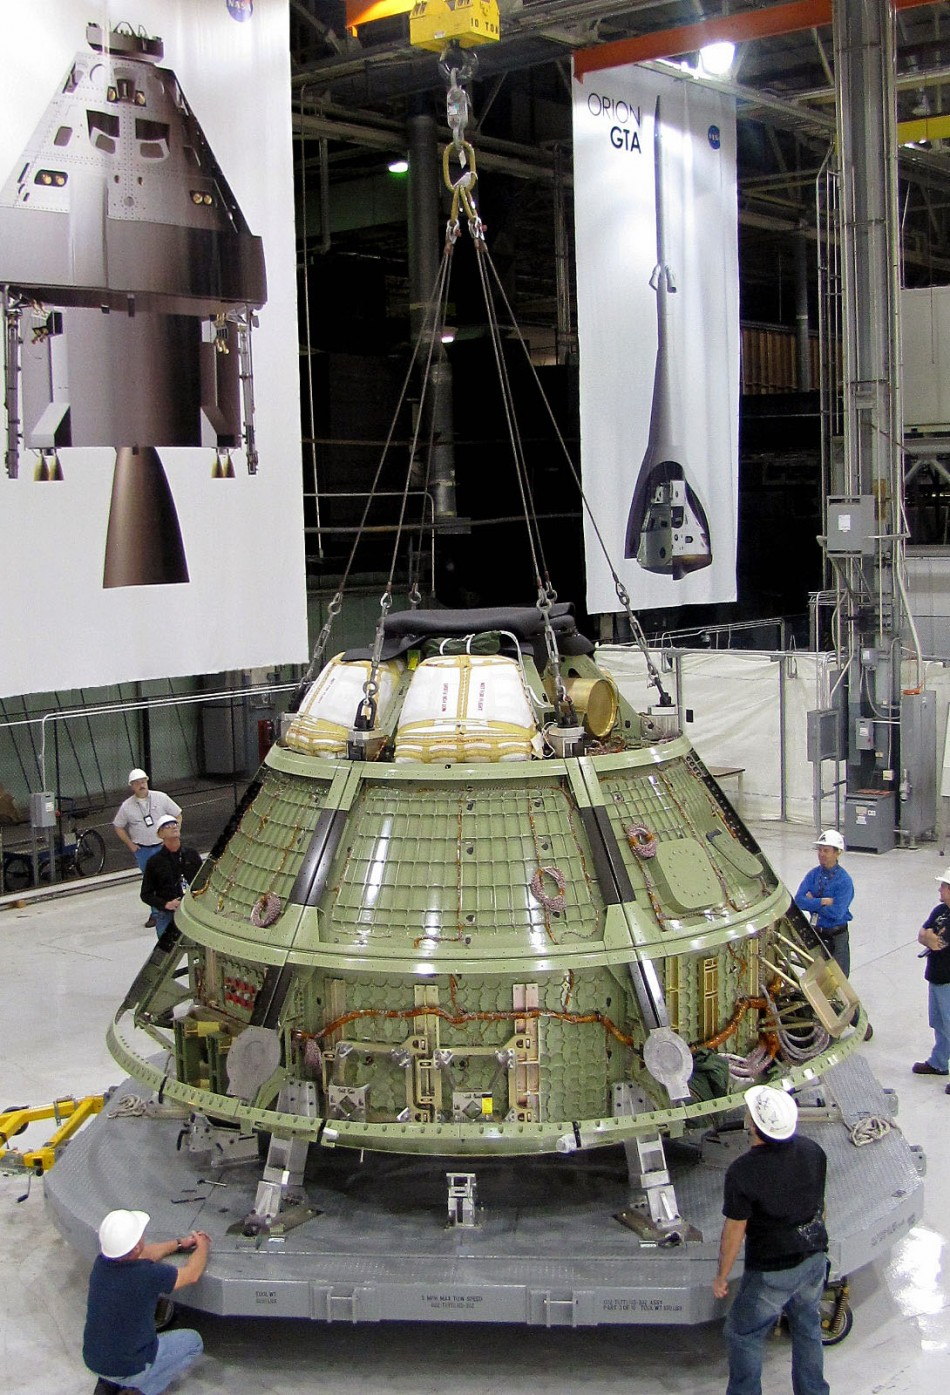 Nasa Mars Mission Gets a Boost: Orion Spacecraft to be Tested Real-Time in December 2014